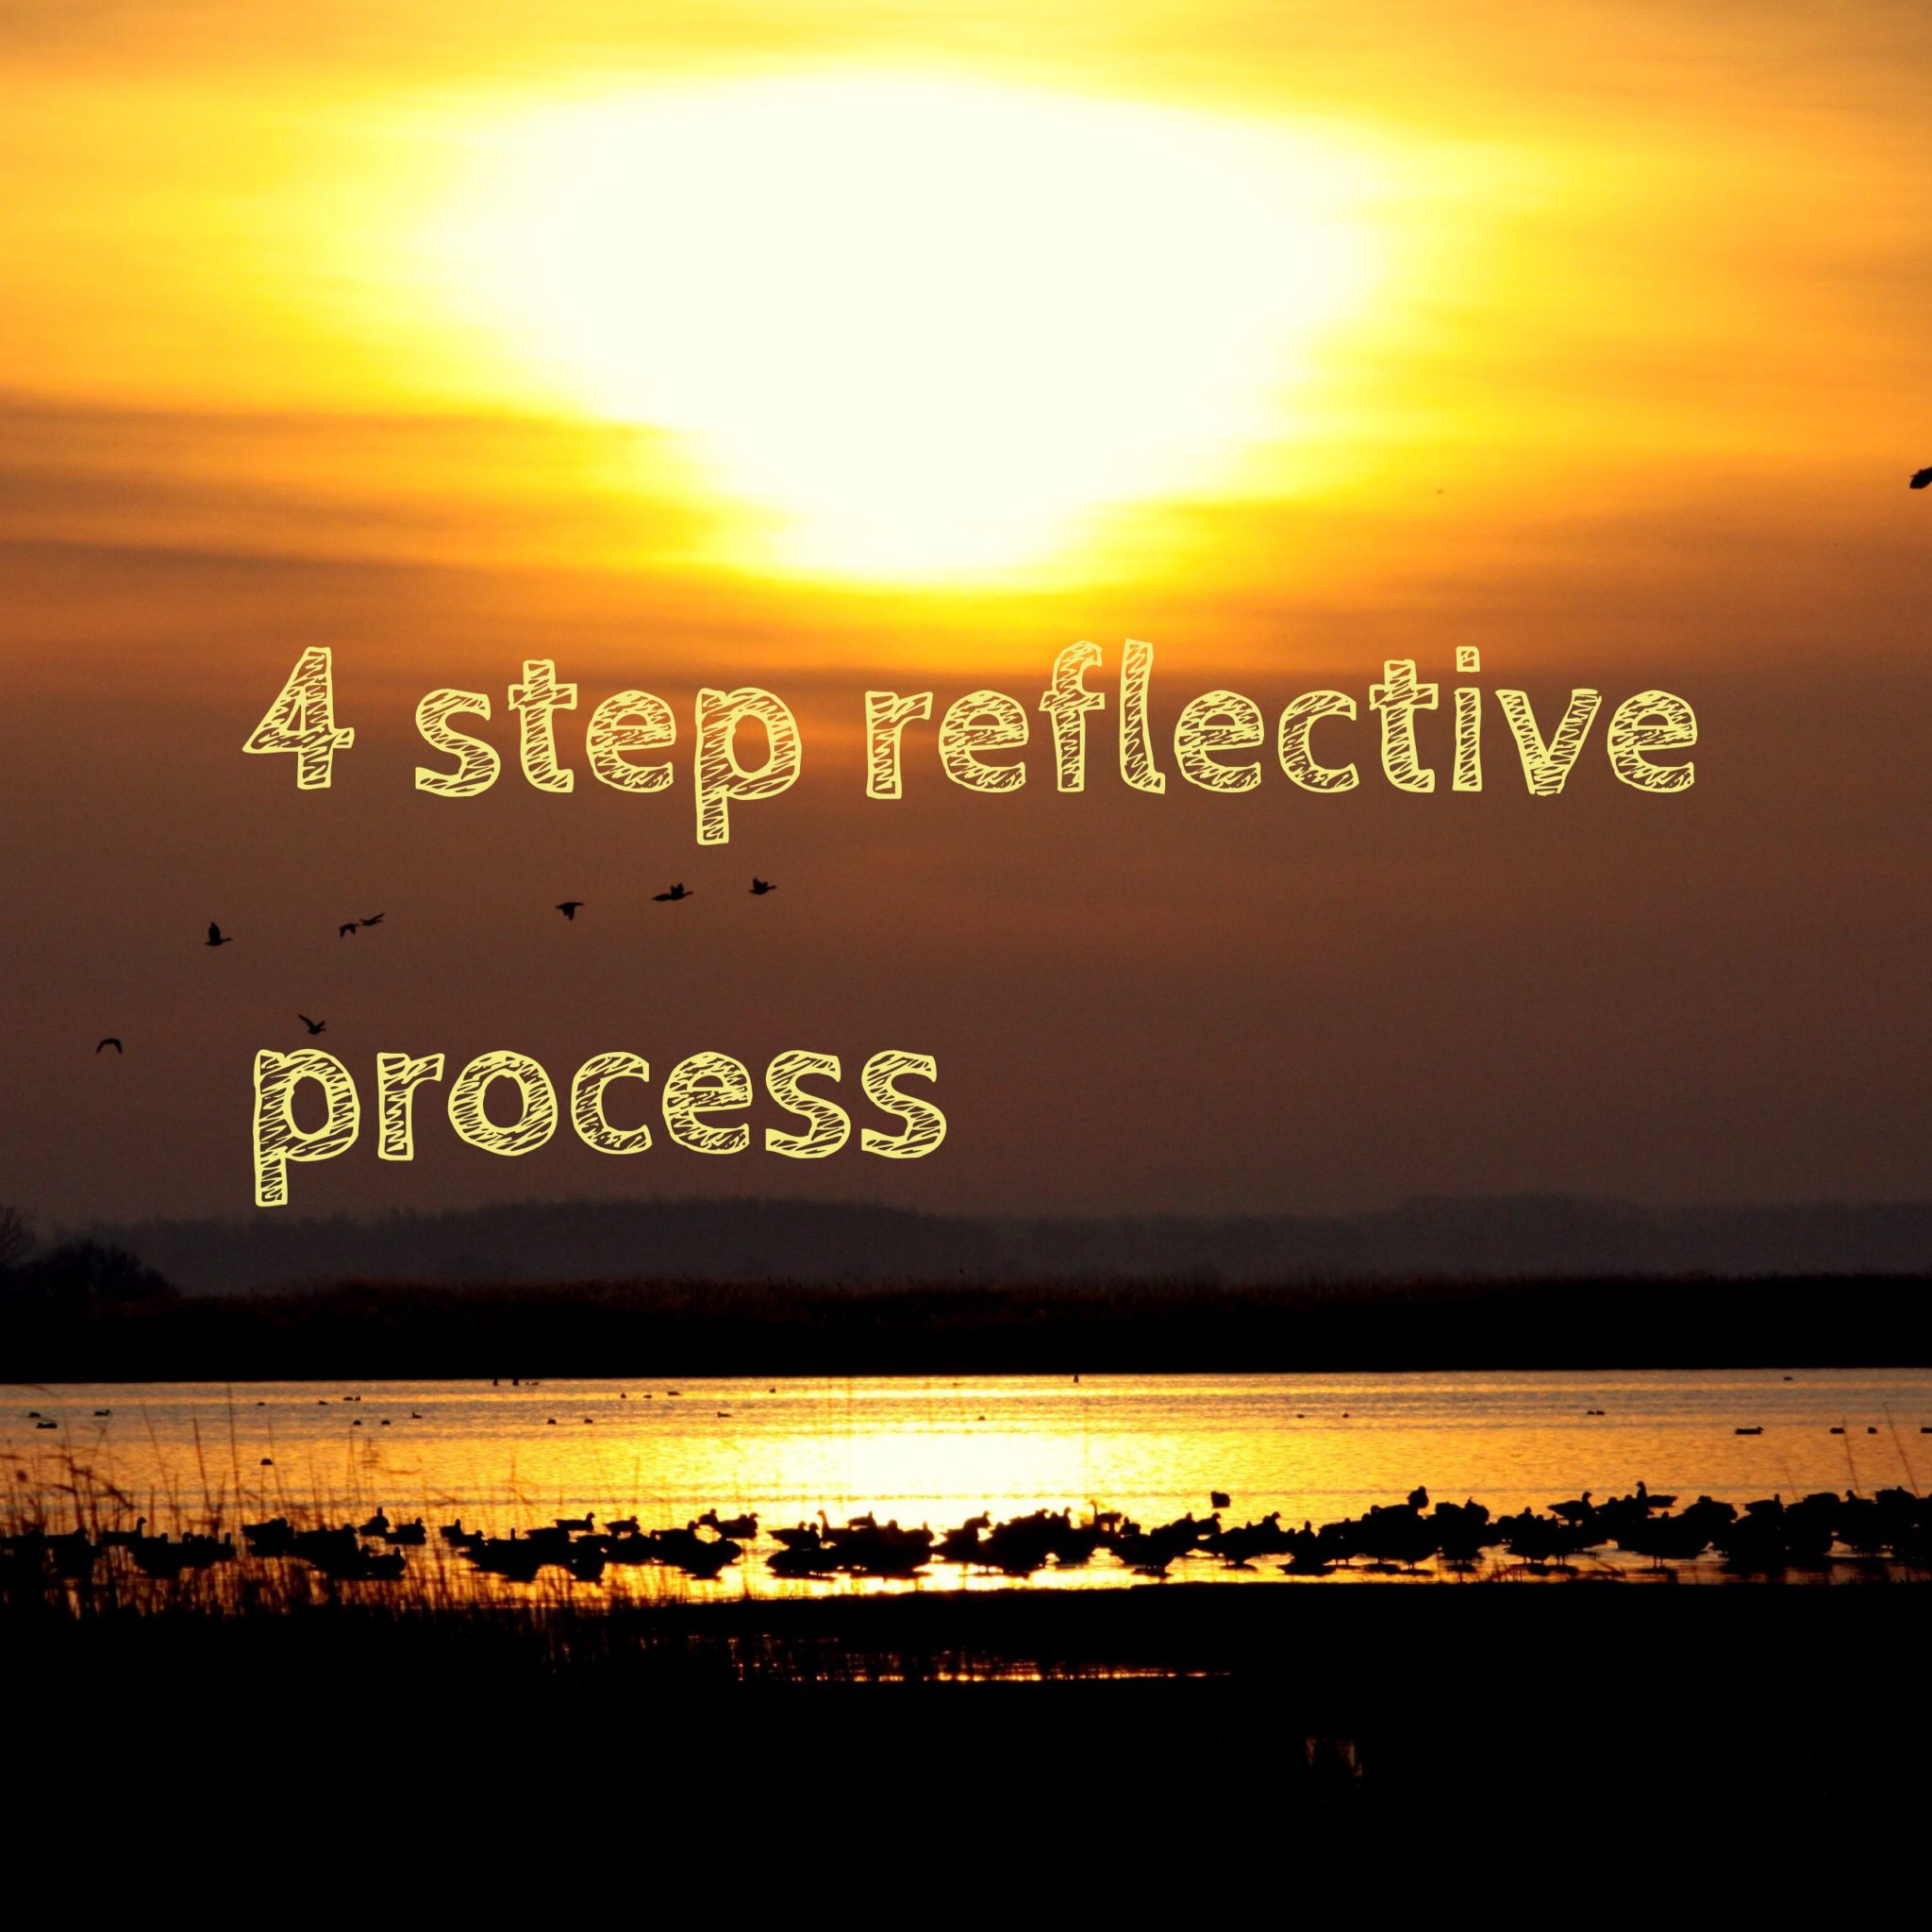 pete hall teaches us how to reflect